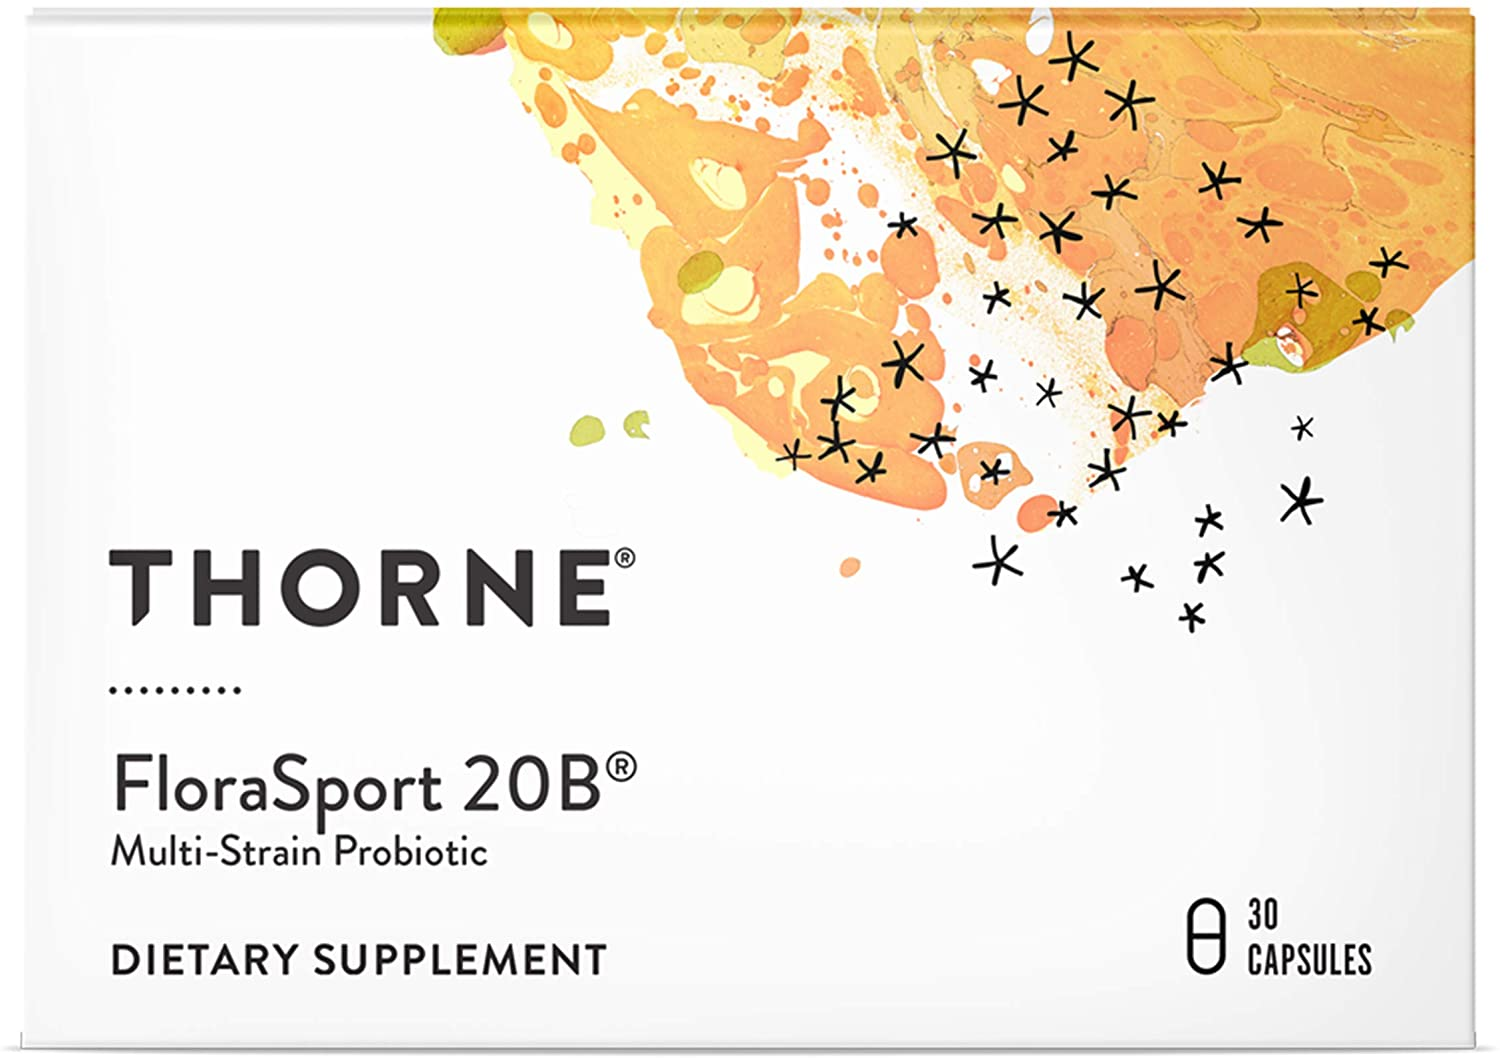 Thorne Research - FloraSport 20B 20 Probiotic Online limited product Billi All items free shipping Supplement-